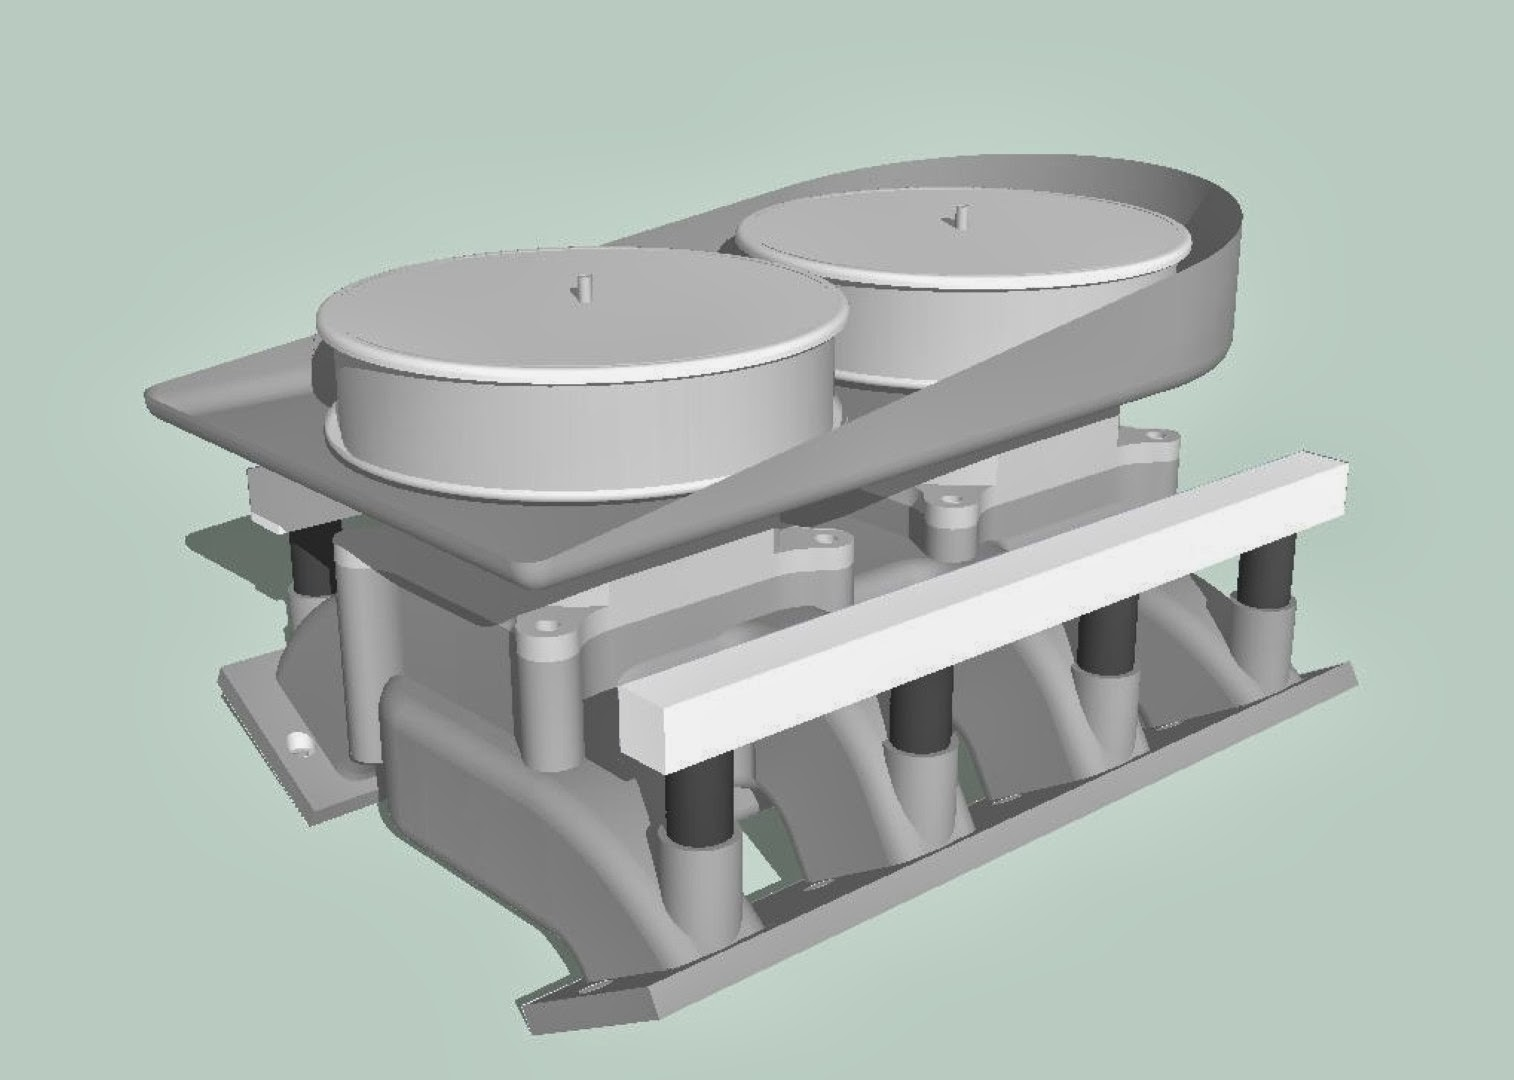 Induction Ideas - Sketchup